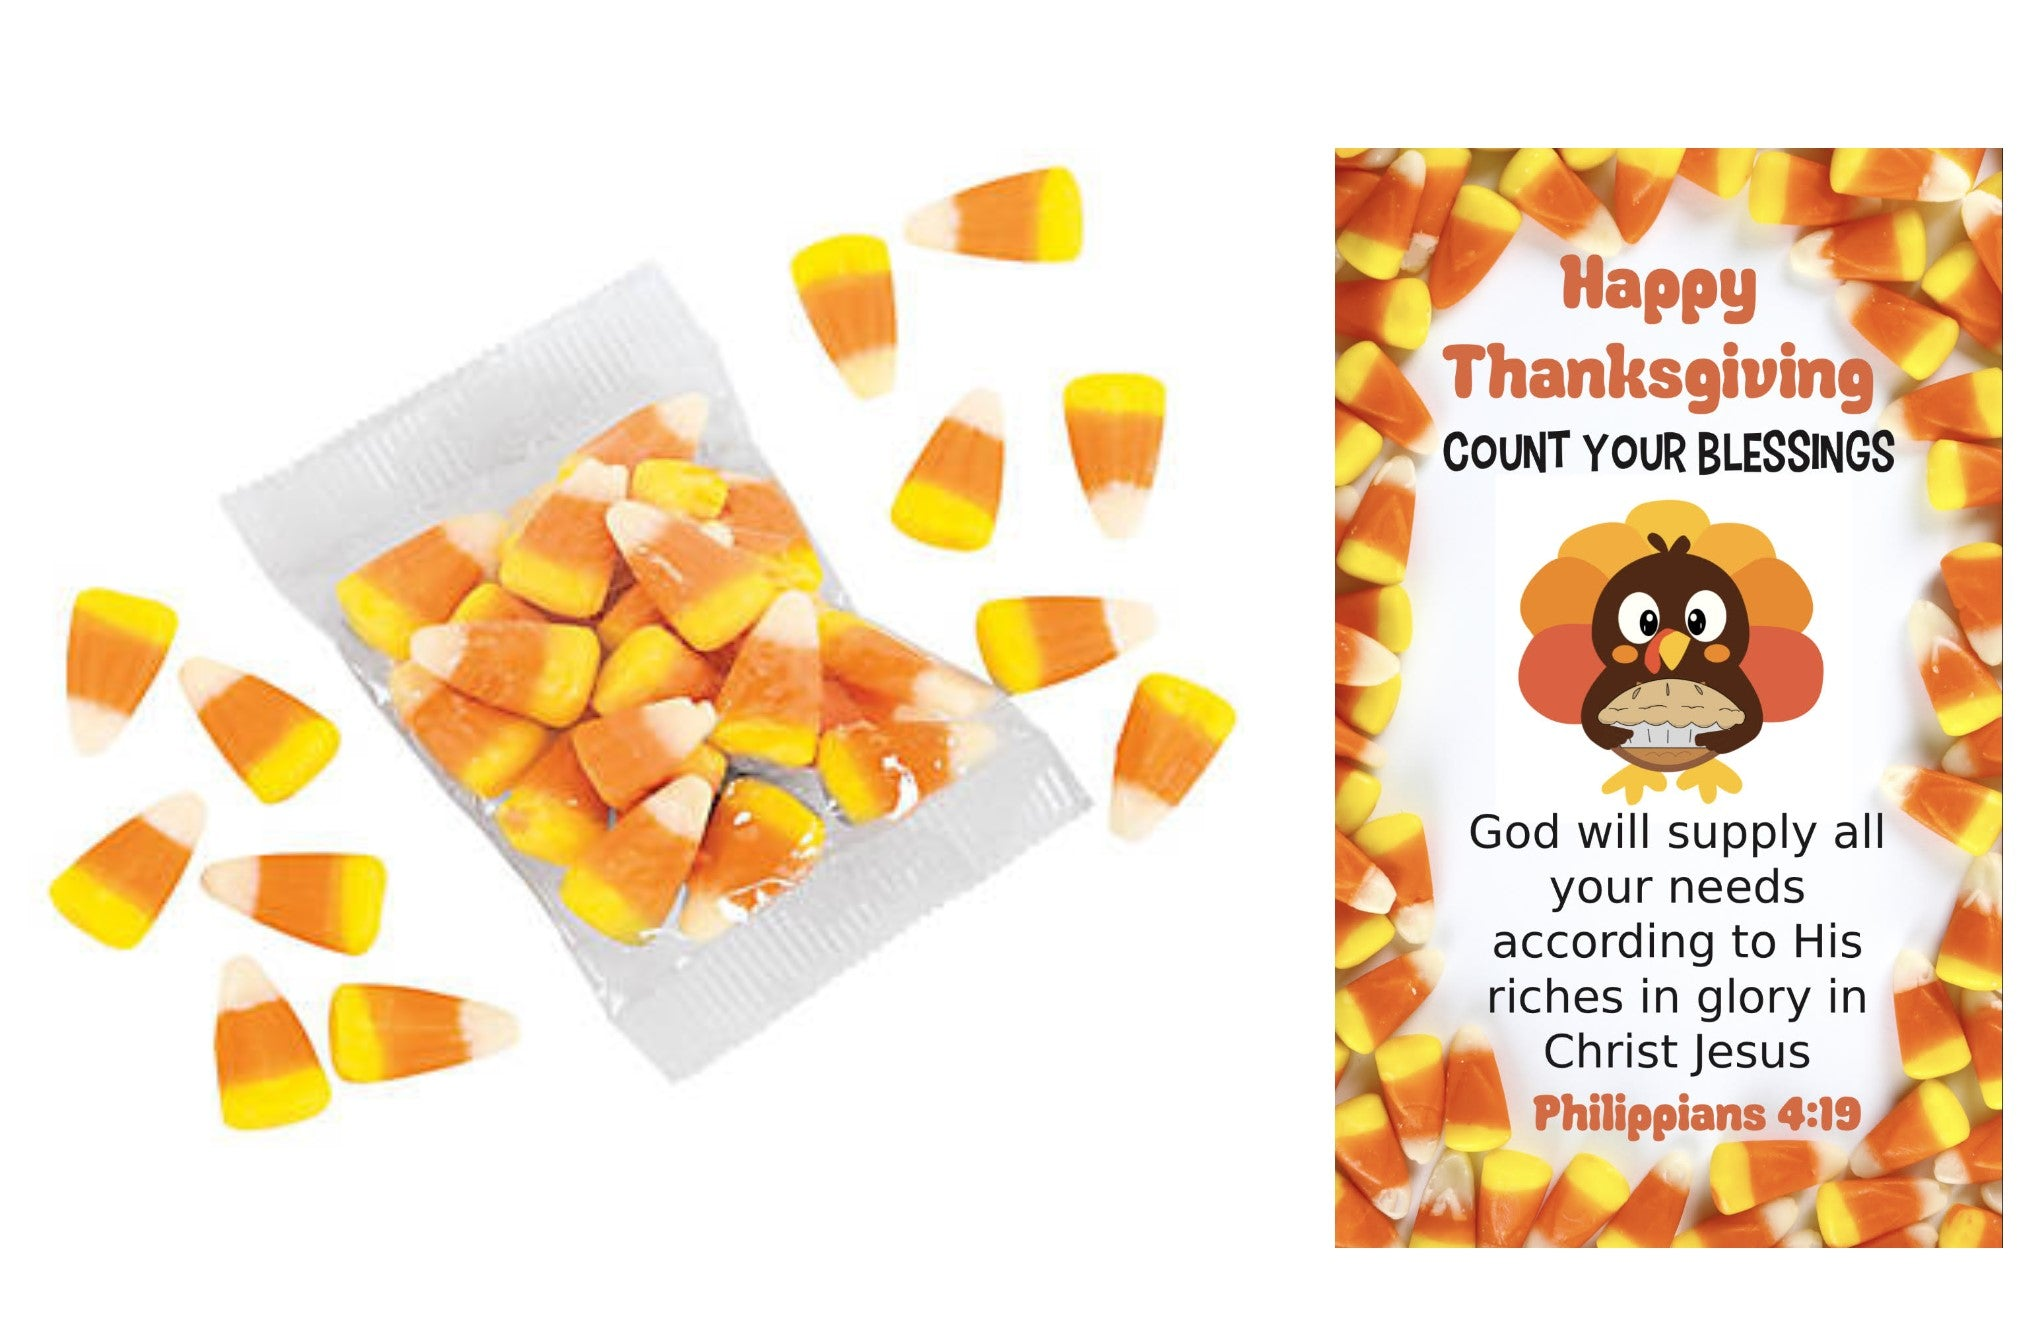 Happy Thanksgiving Count Your Blessings Candy Corn with Turkey Card (24 Sets)